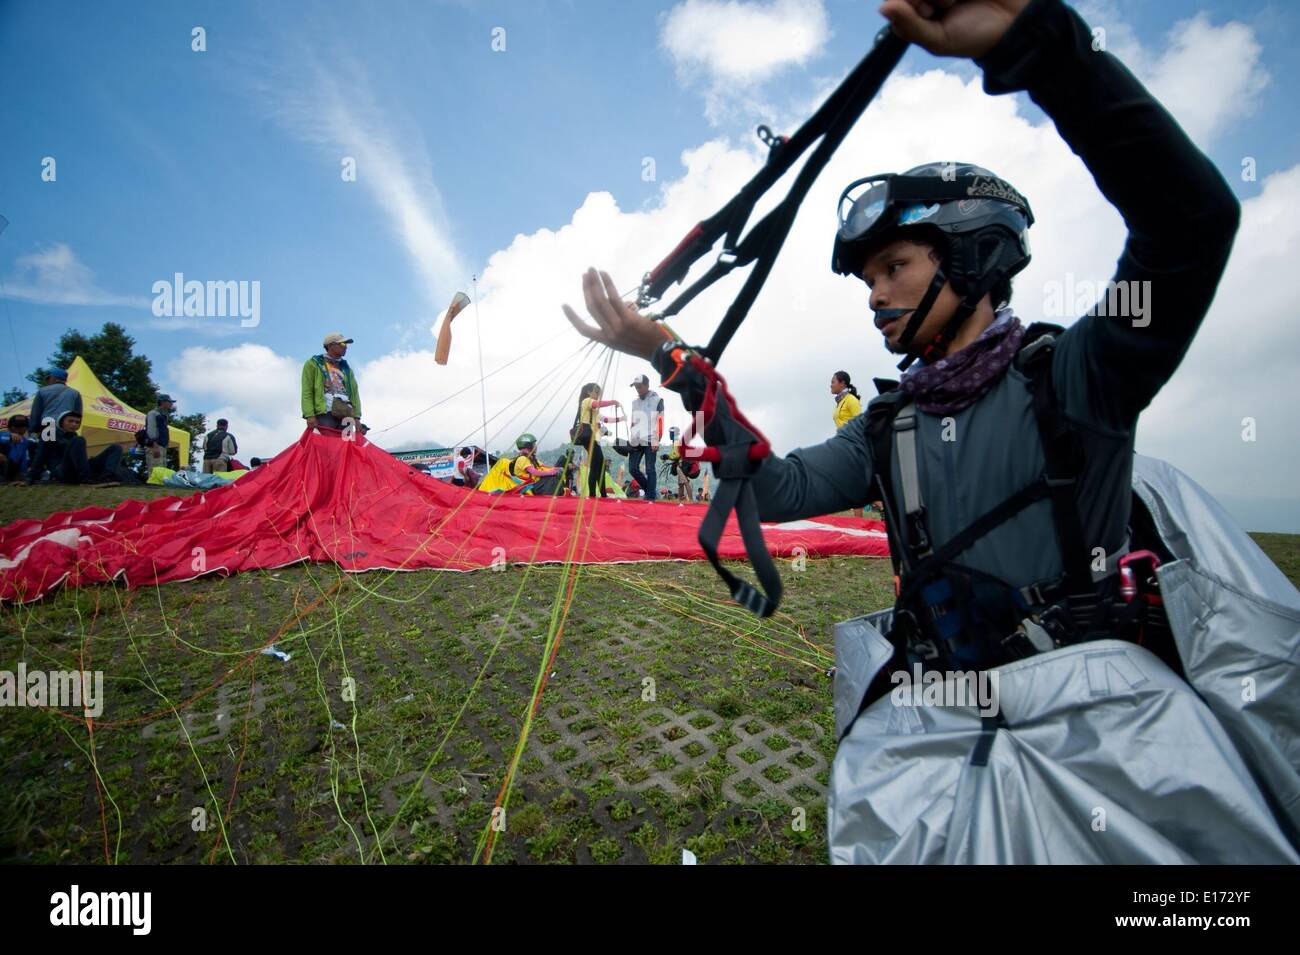 Fly Paragliding Stock Photos & Fly Paragliding Stock Images - Alamy